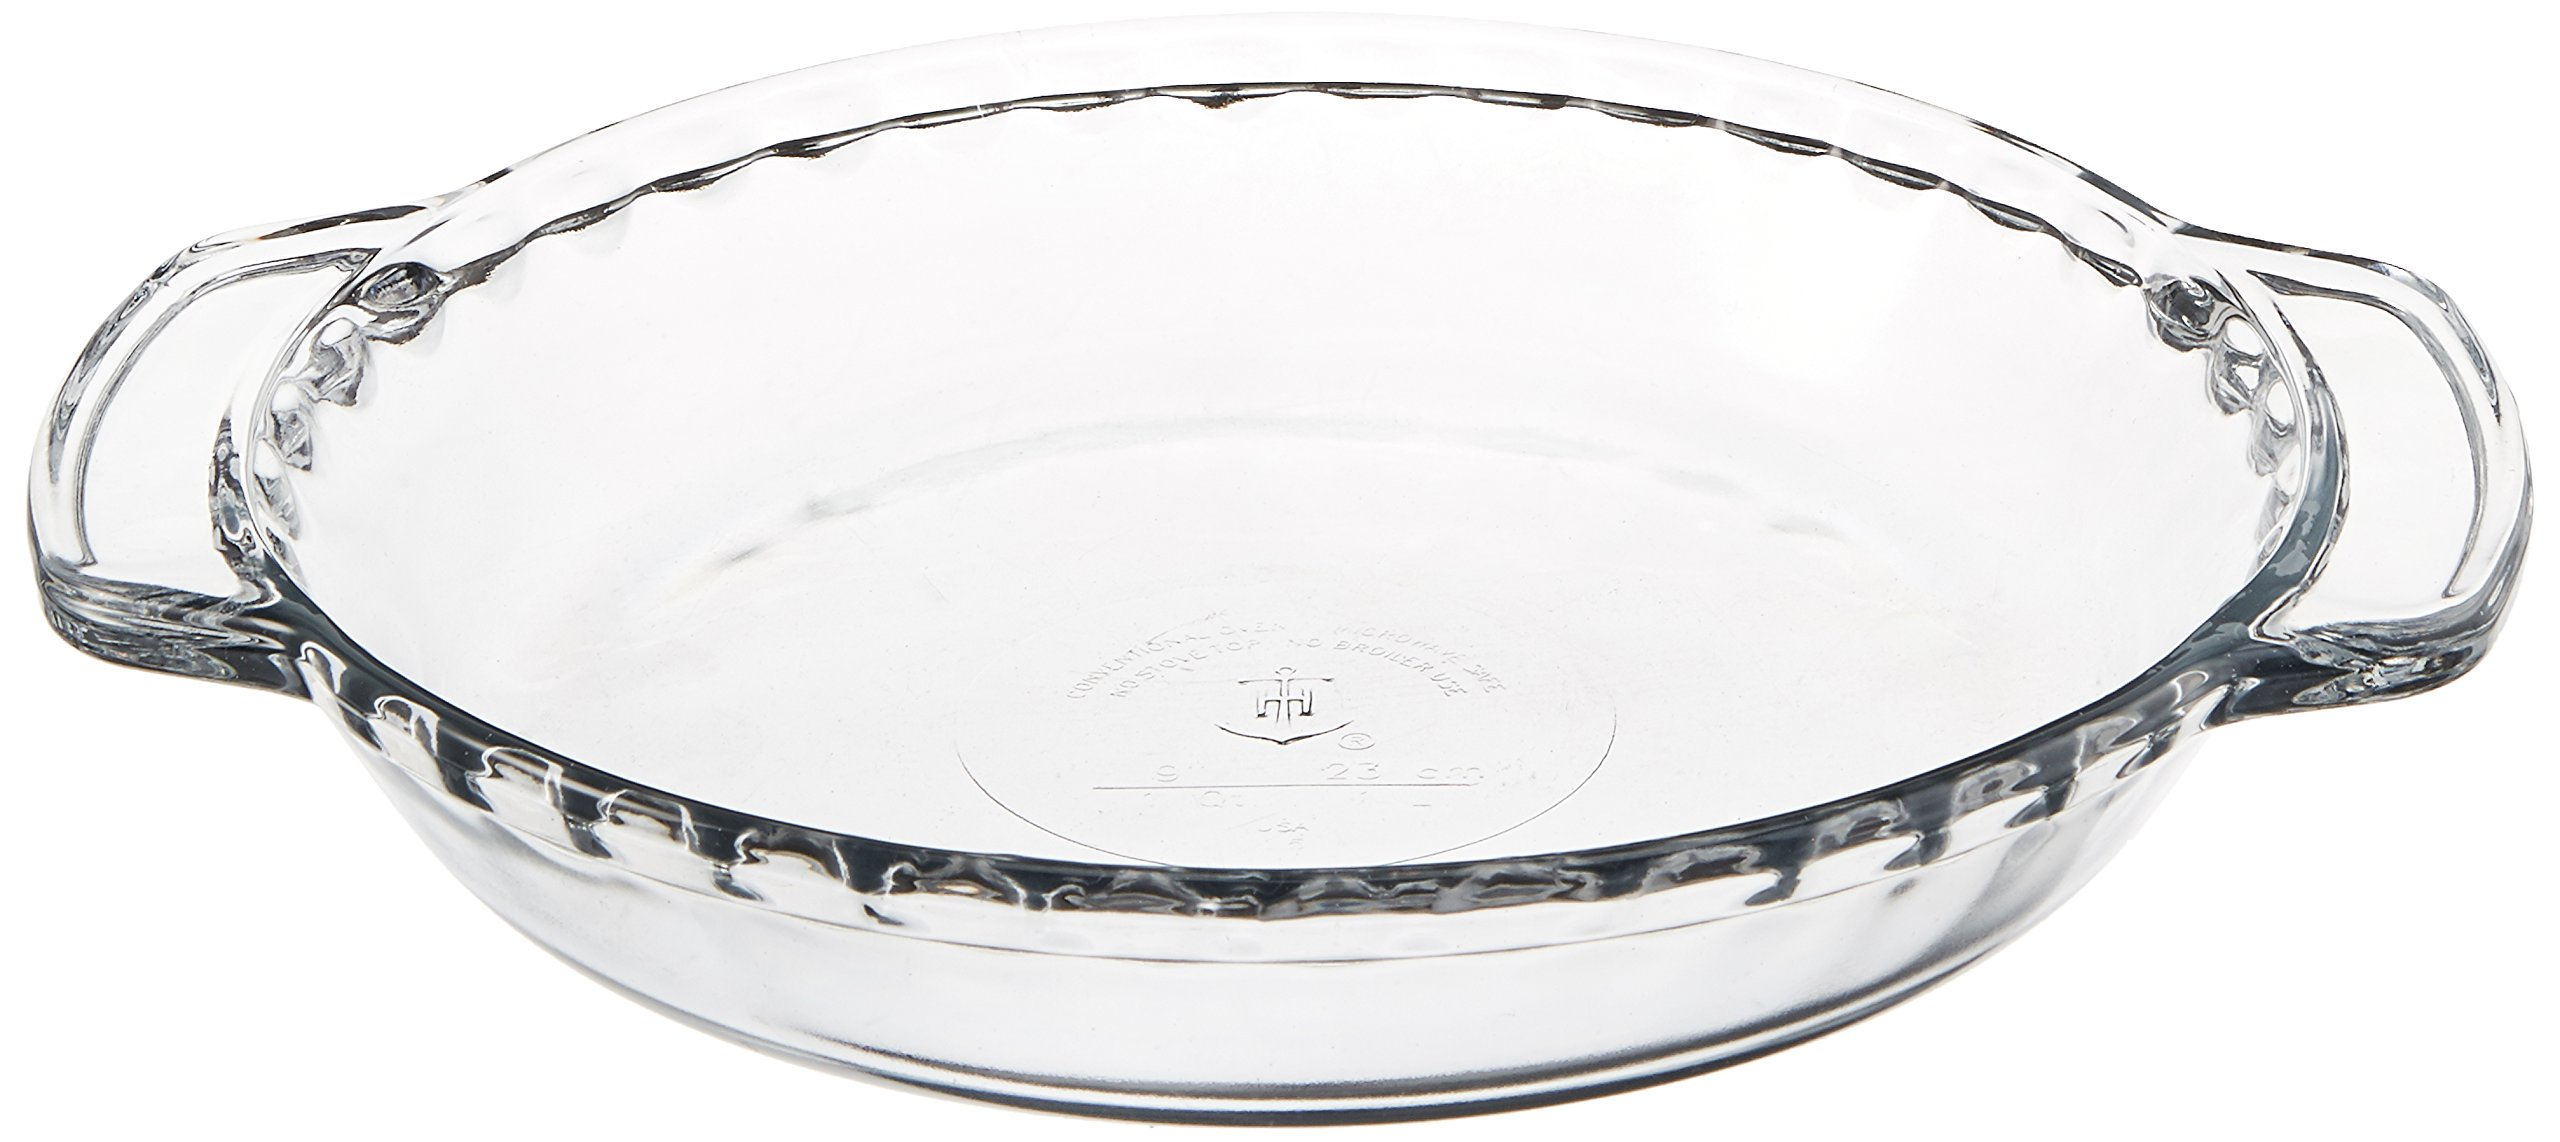 Anchor Hocking 77886 Fire-King Deep Pie Baking Dish, Glass, 9-Inch